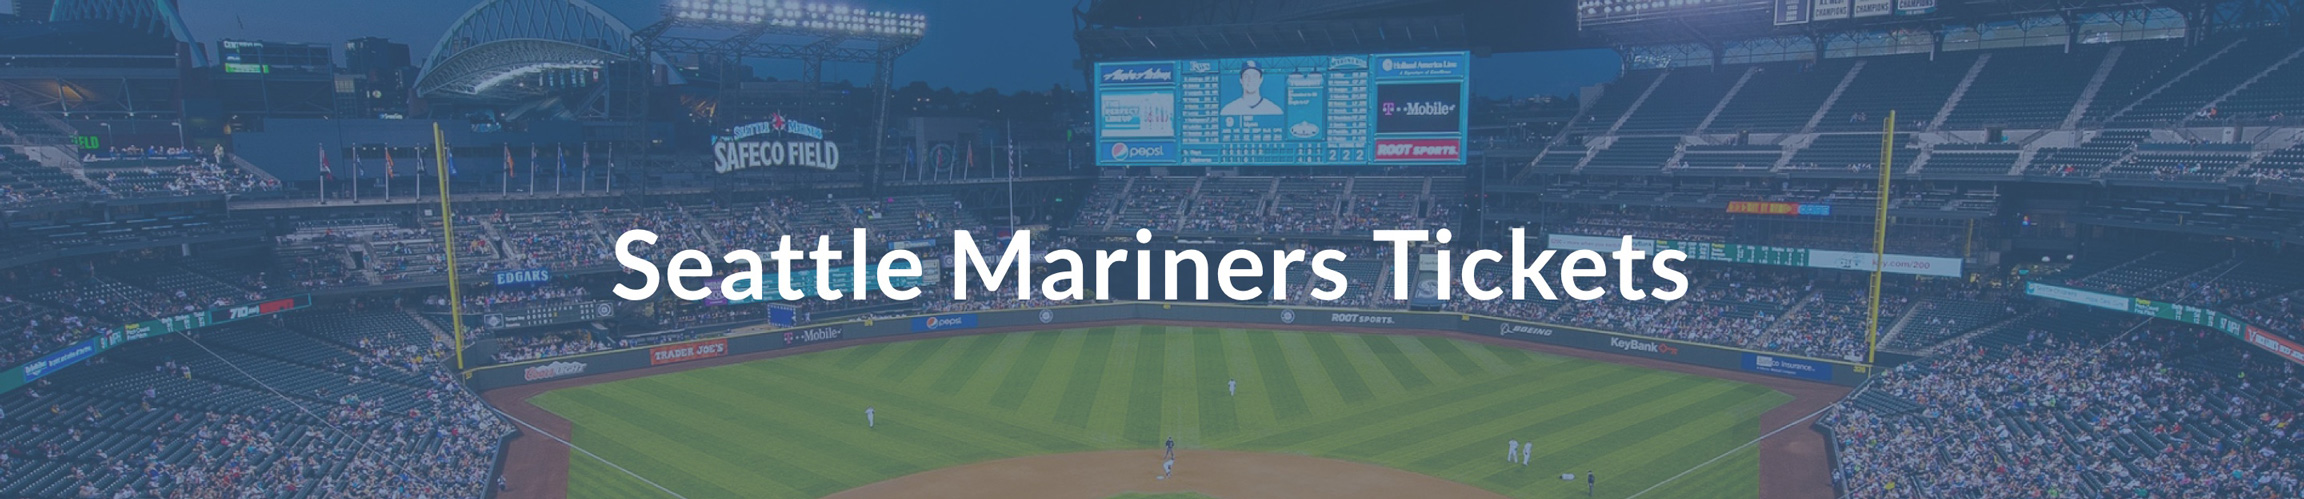 Seattle Mariners Baseball T-Mobile Ball Park